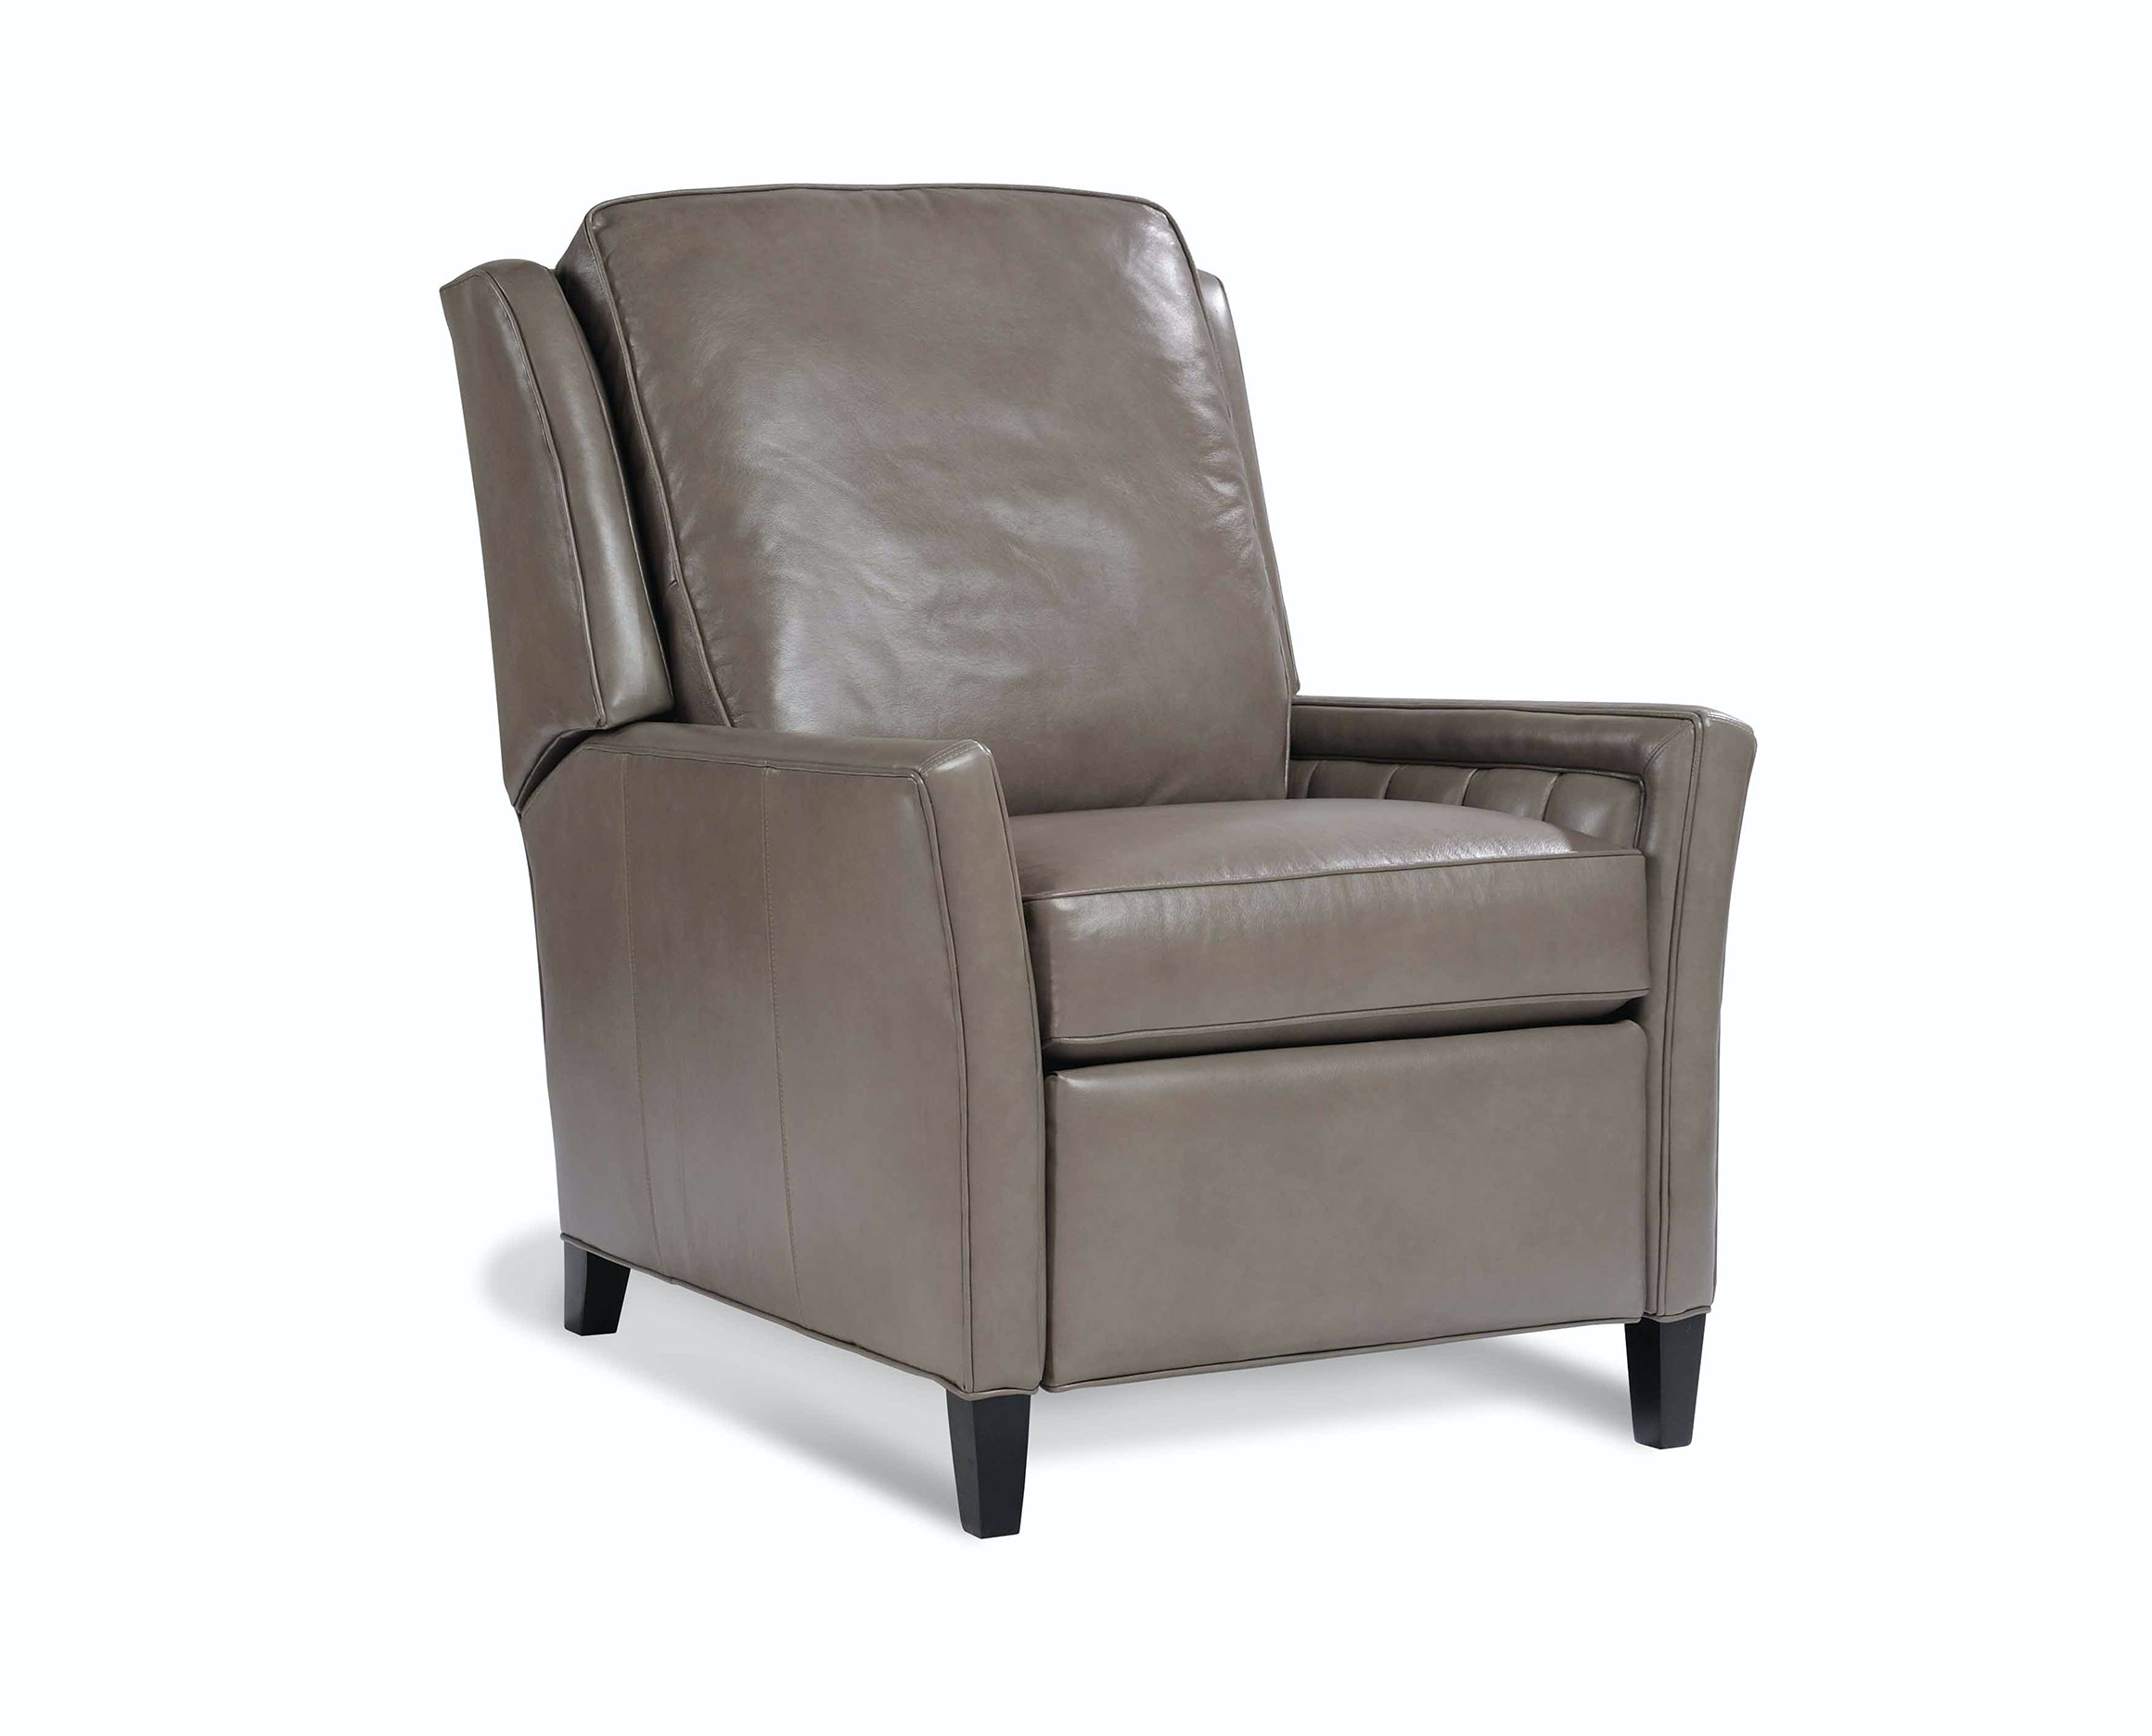 Taylor King Furniture L6913 H Living Room McNab Reclining Chair